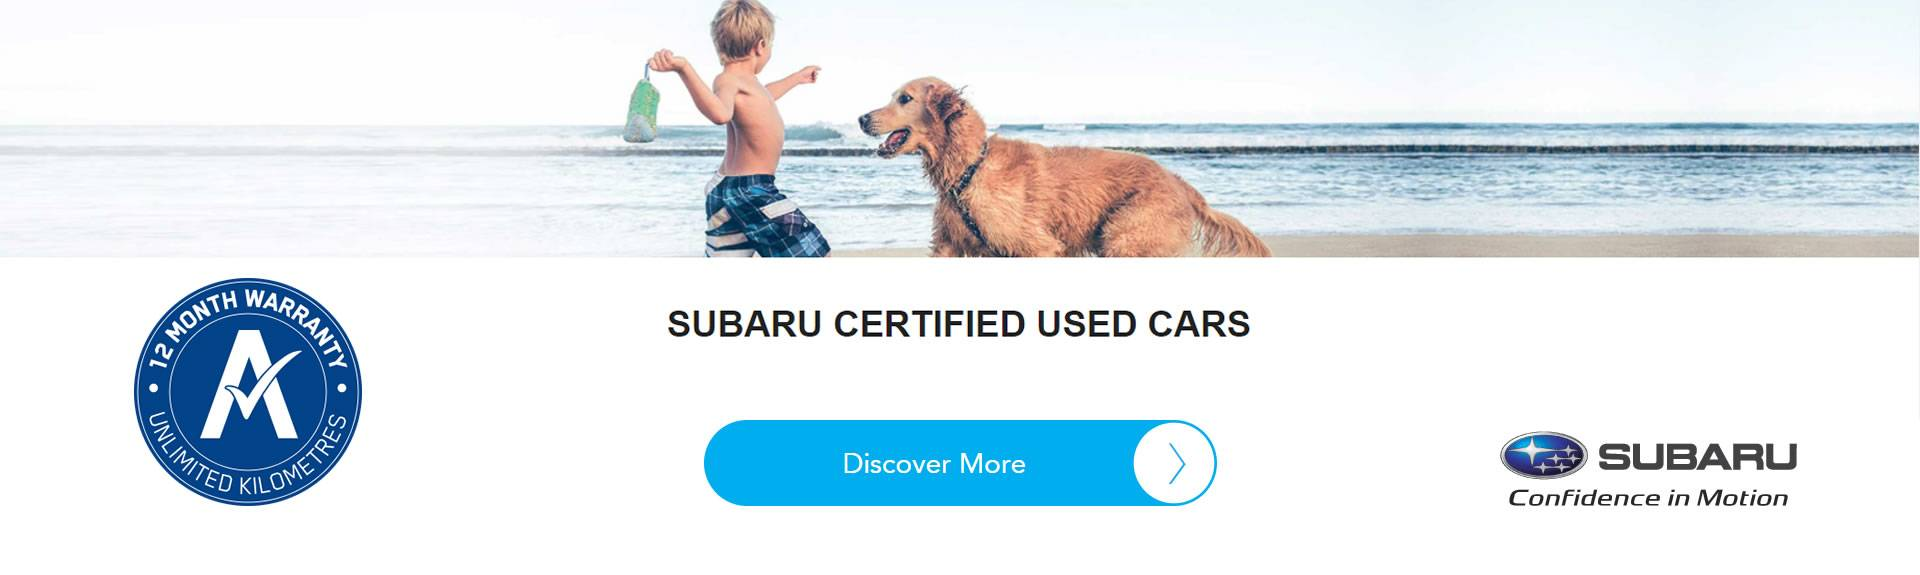 Carlin & Gazzard Subaru Assured